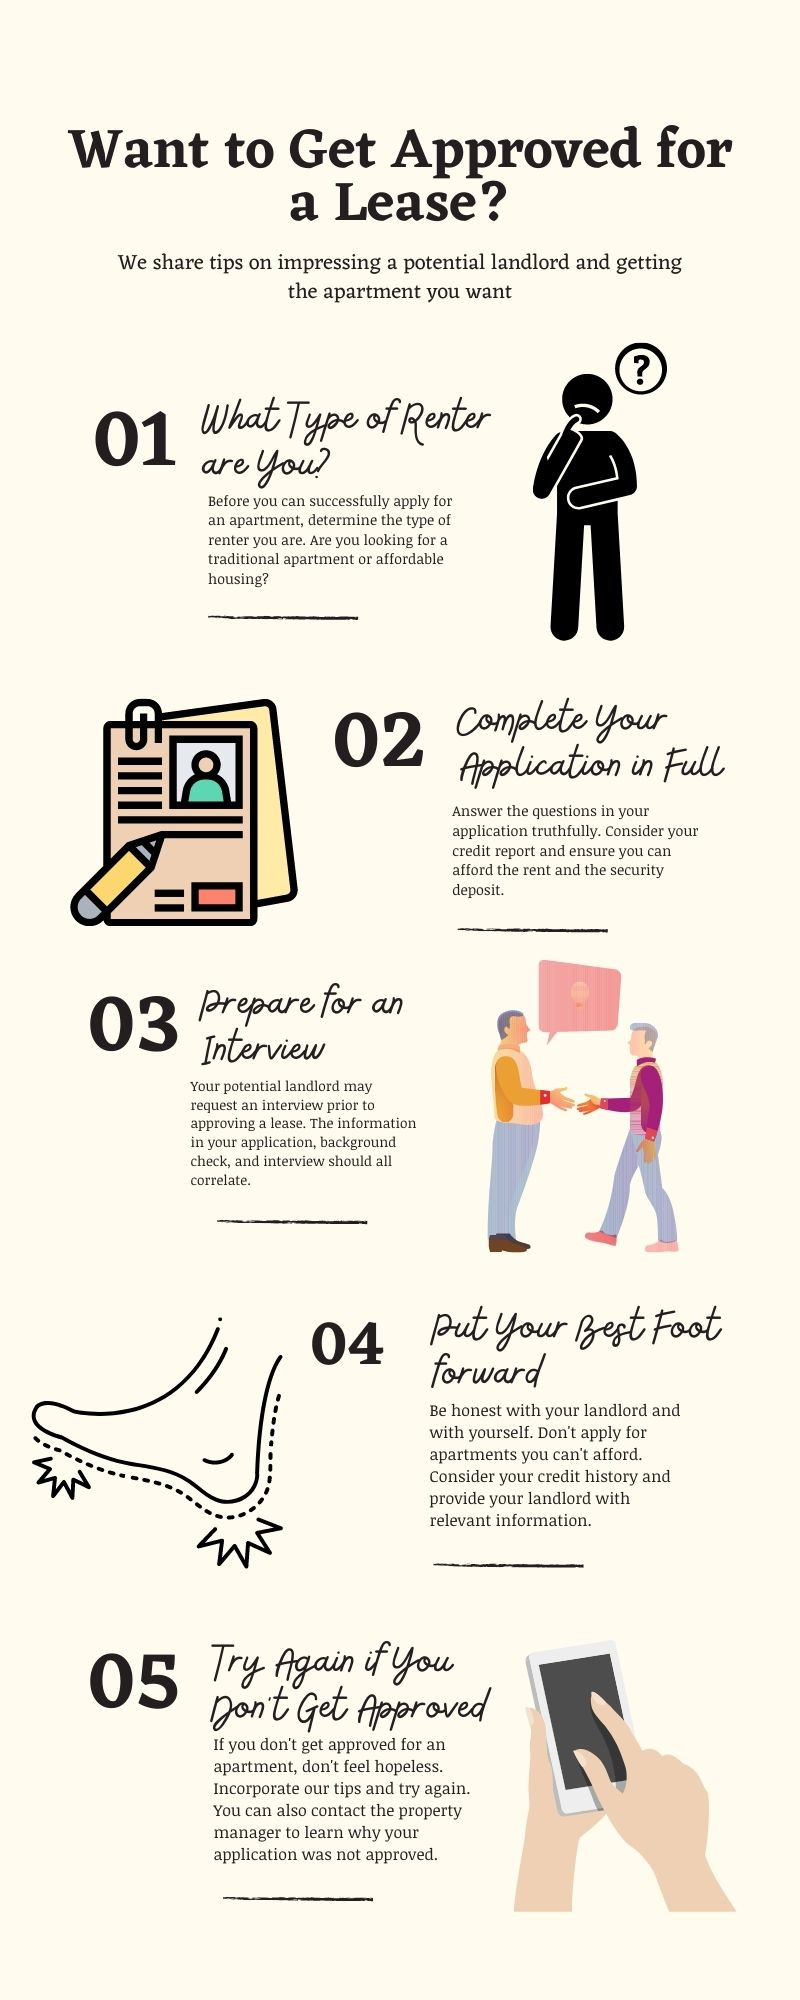 An infographic describing the 5 steps to be approved for a lease.